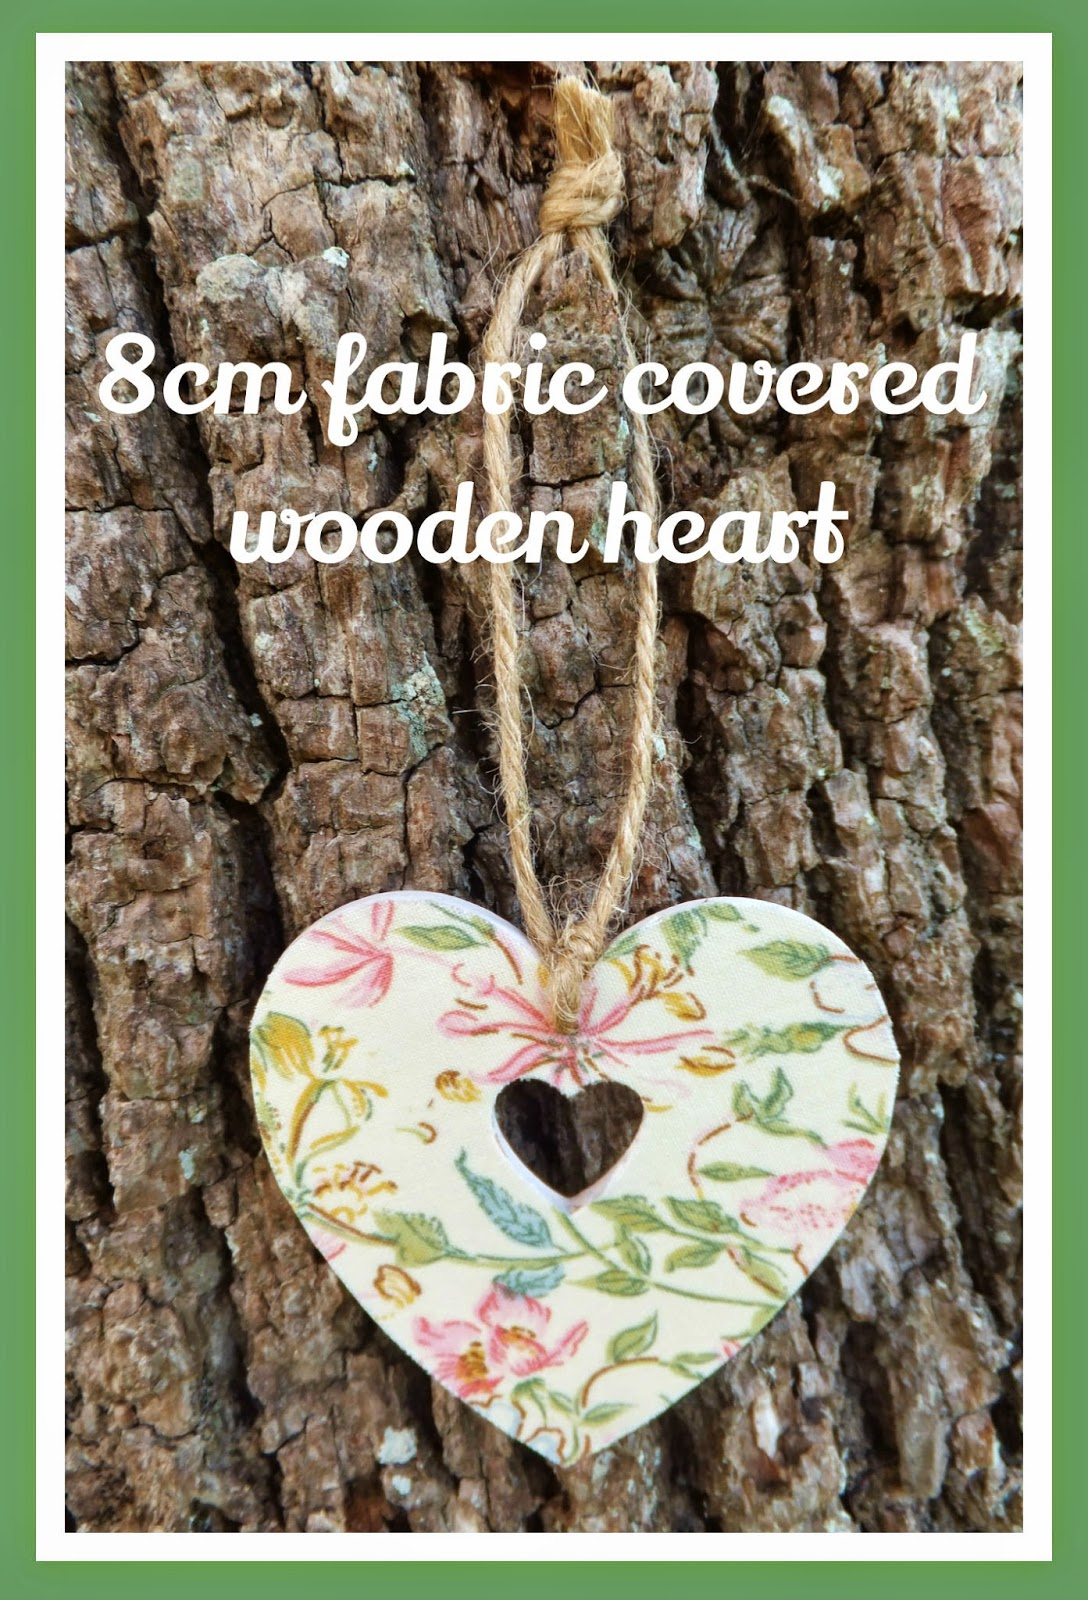 fabric covered wooden heart hanging on tree